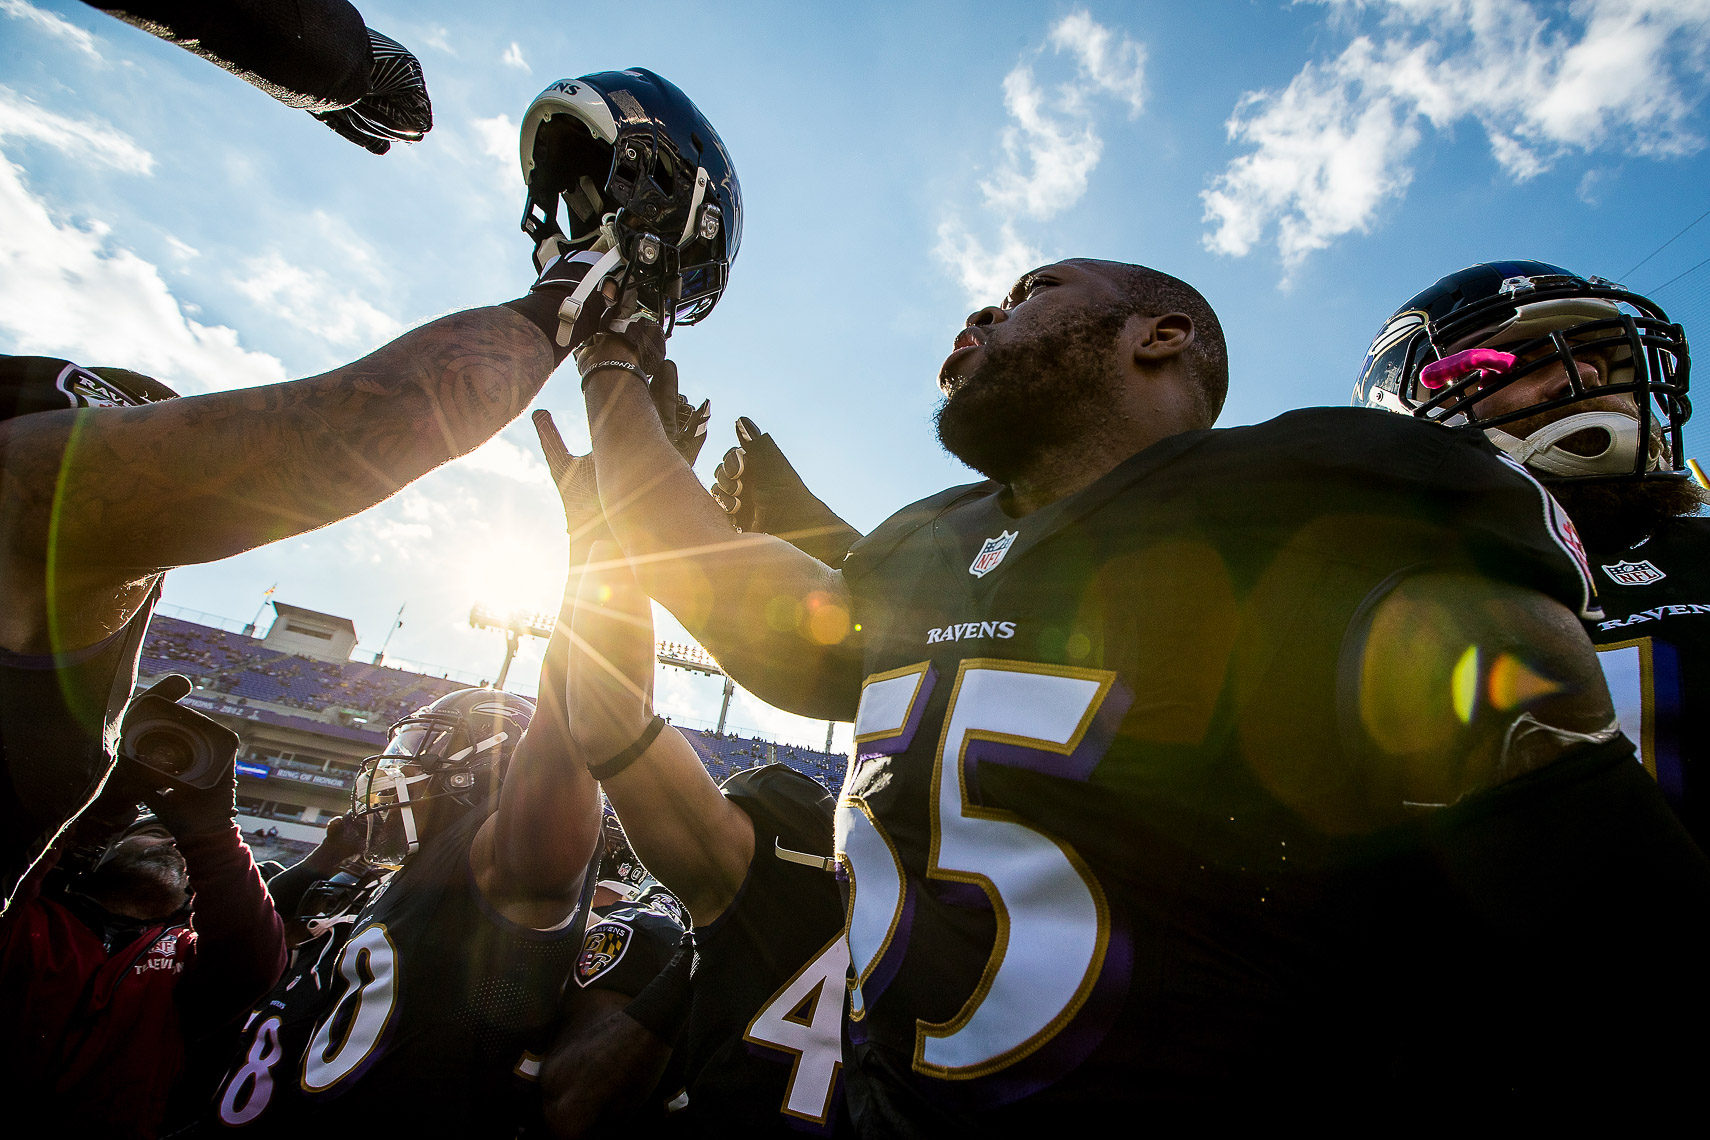 NFL football team Baltimore Ravens photographed in NIKE football uniforms by commercial advertising sports photographer in baltimore maryland showing sports action photography